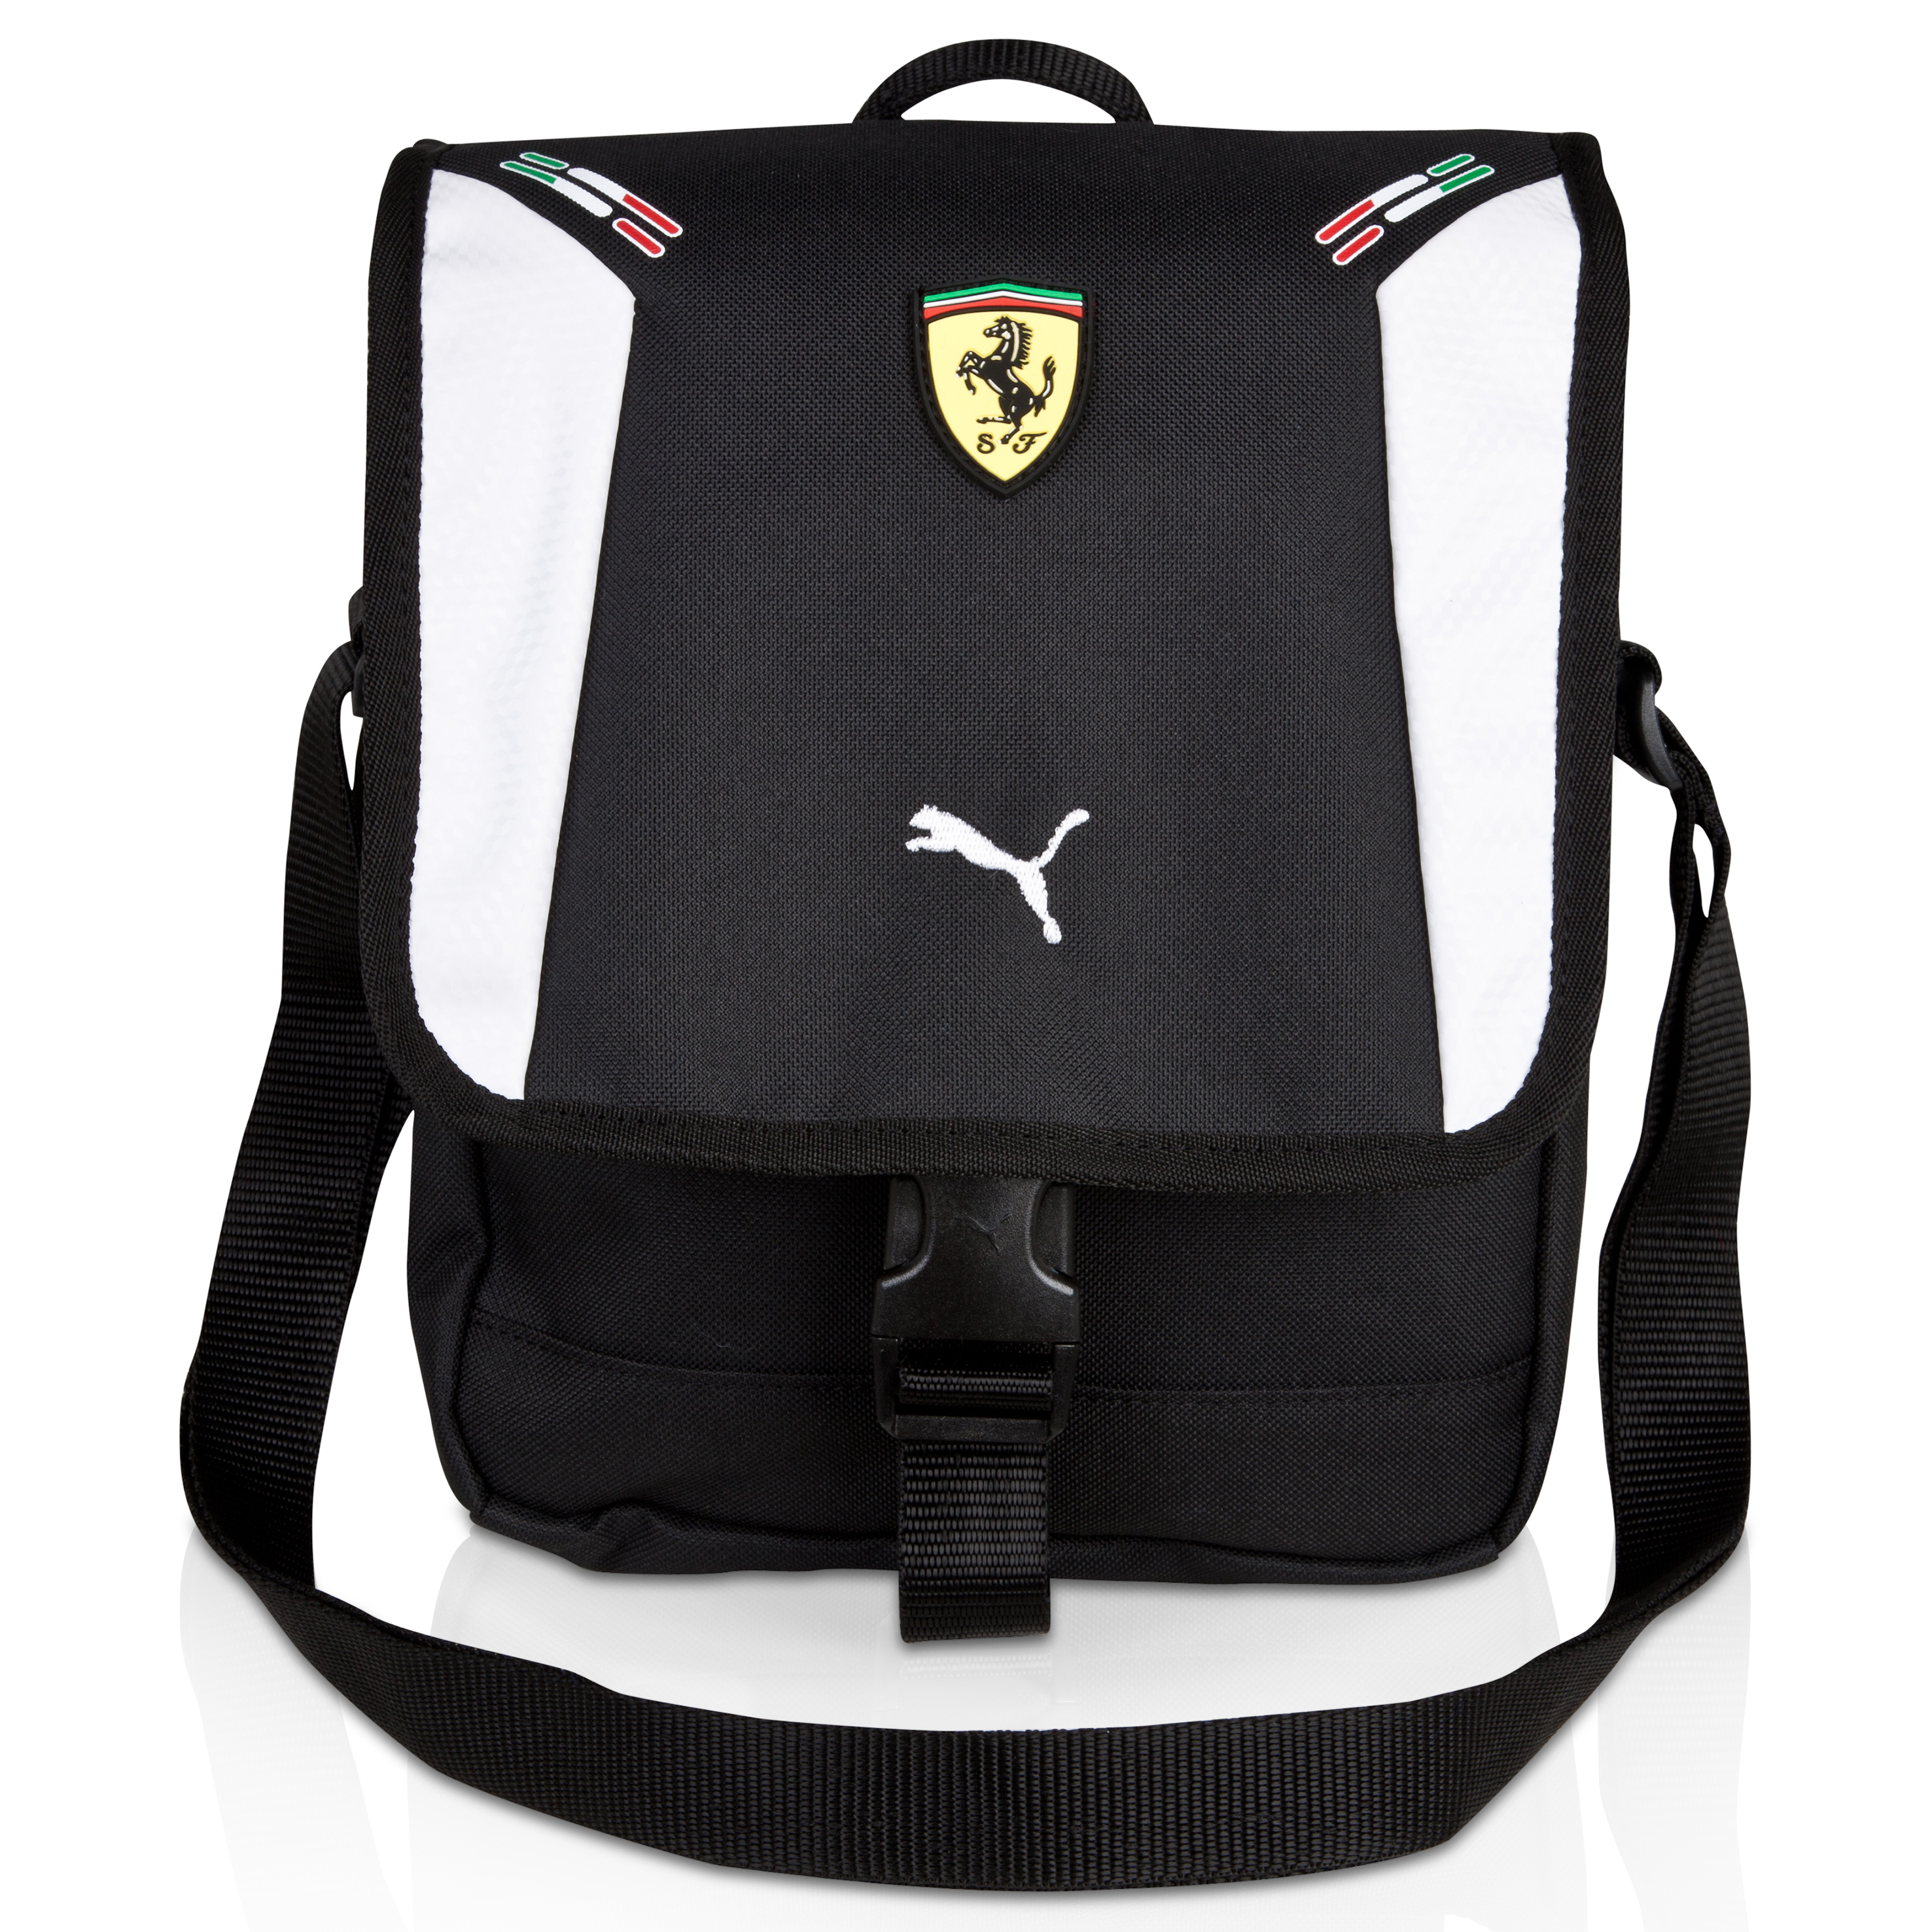 Scuderia Ferrari Replica Portable - Black/White